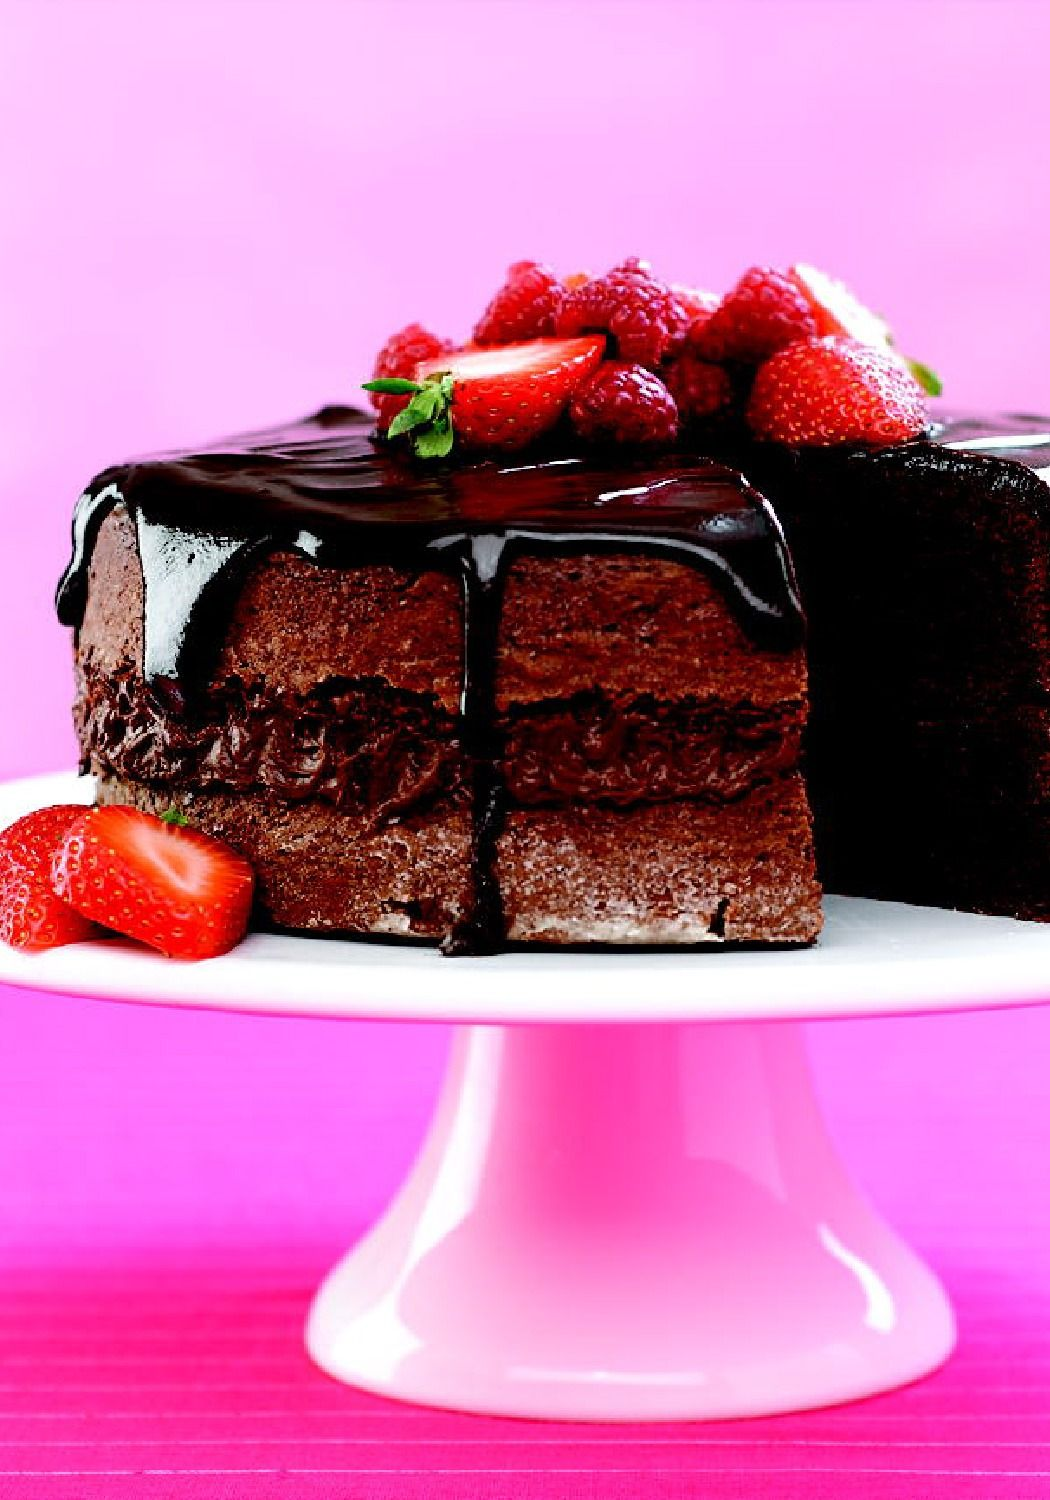 Glazed Chocolate-Sour Cream Cake – By just replacing the water with sour cream in this box mix, the cake is extra moist and tender.